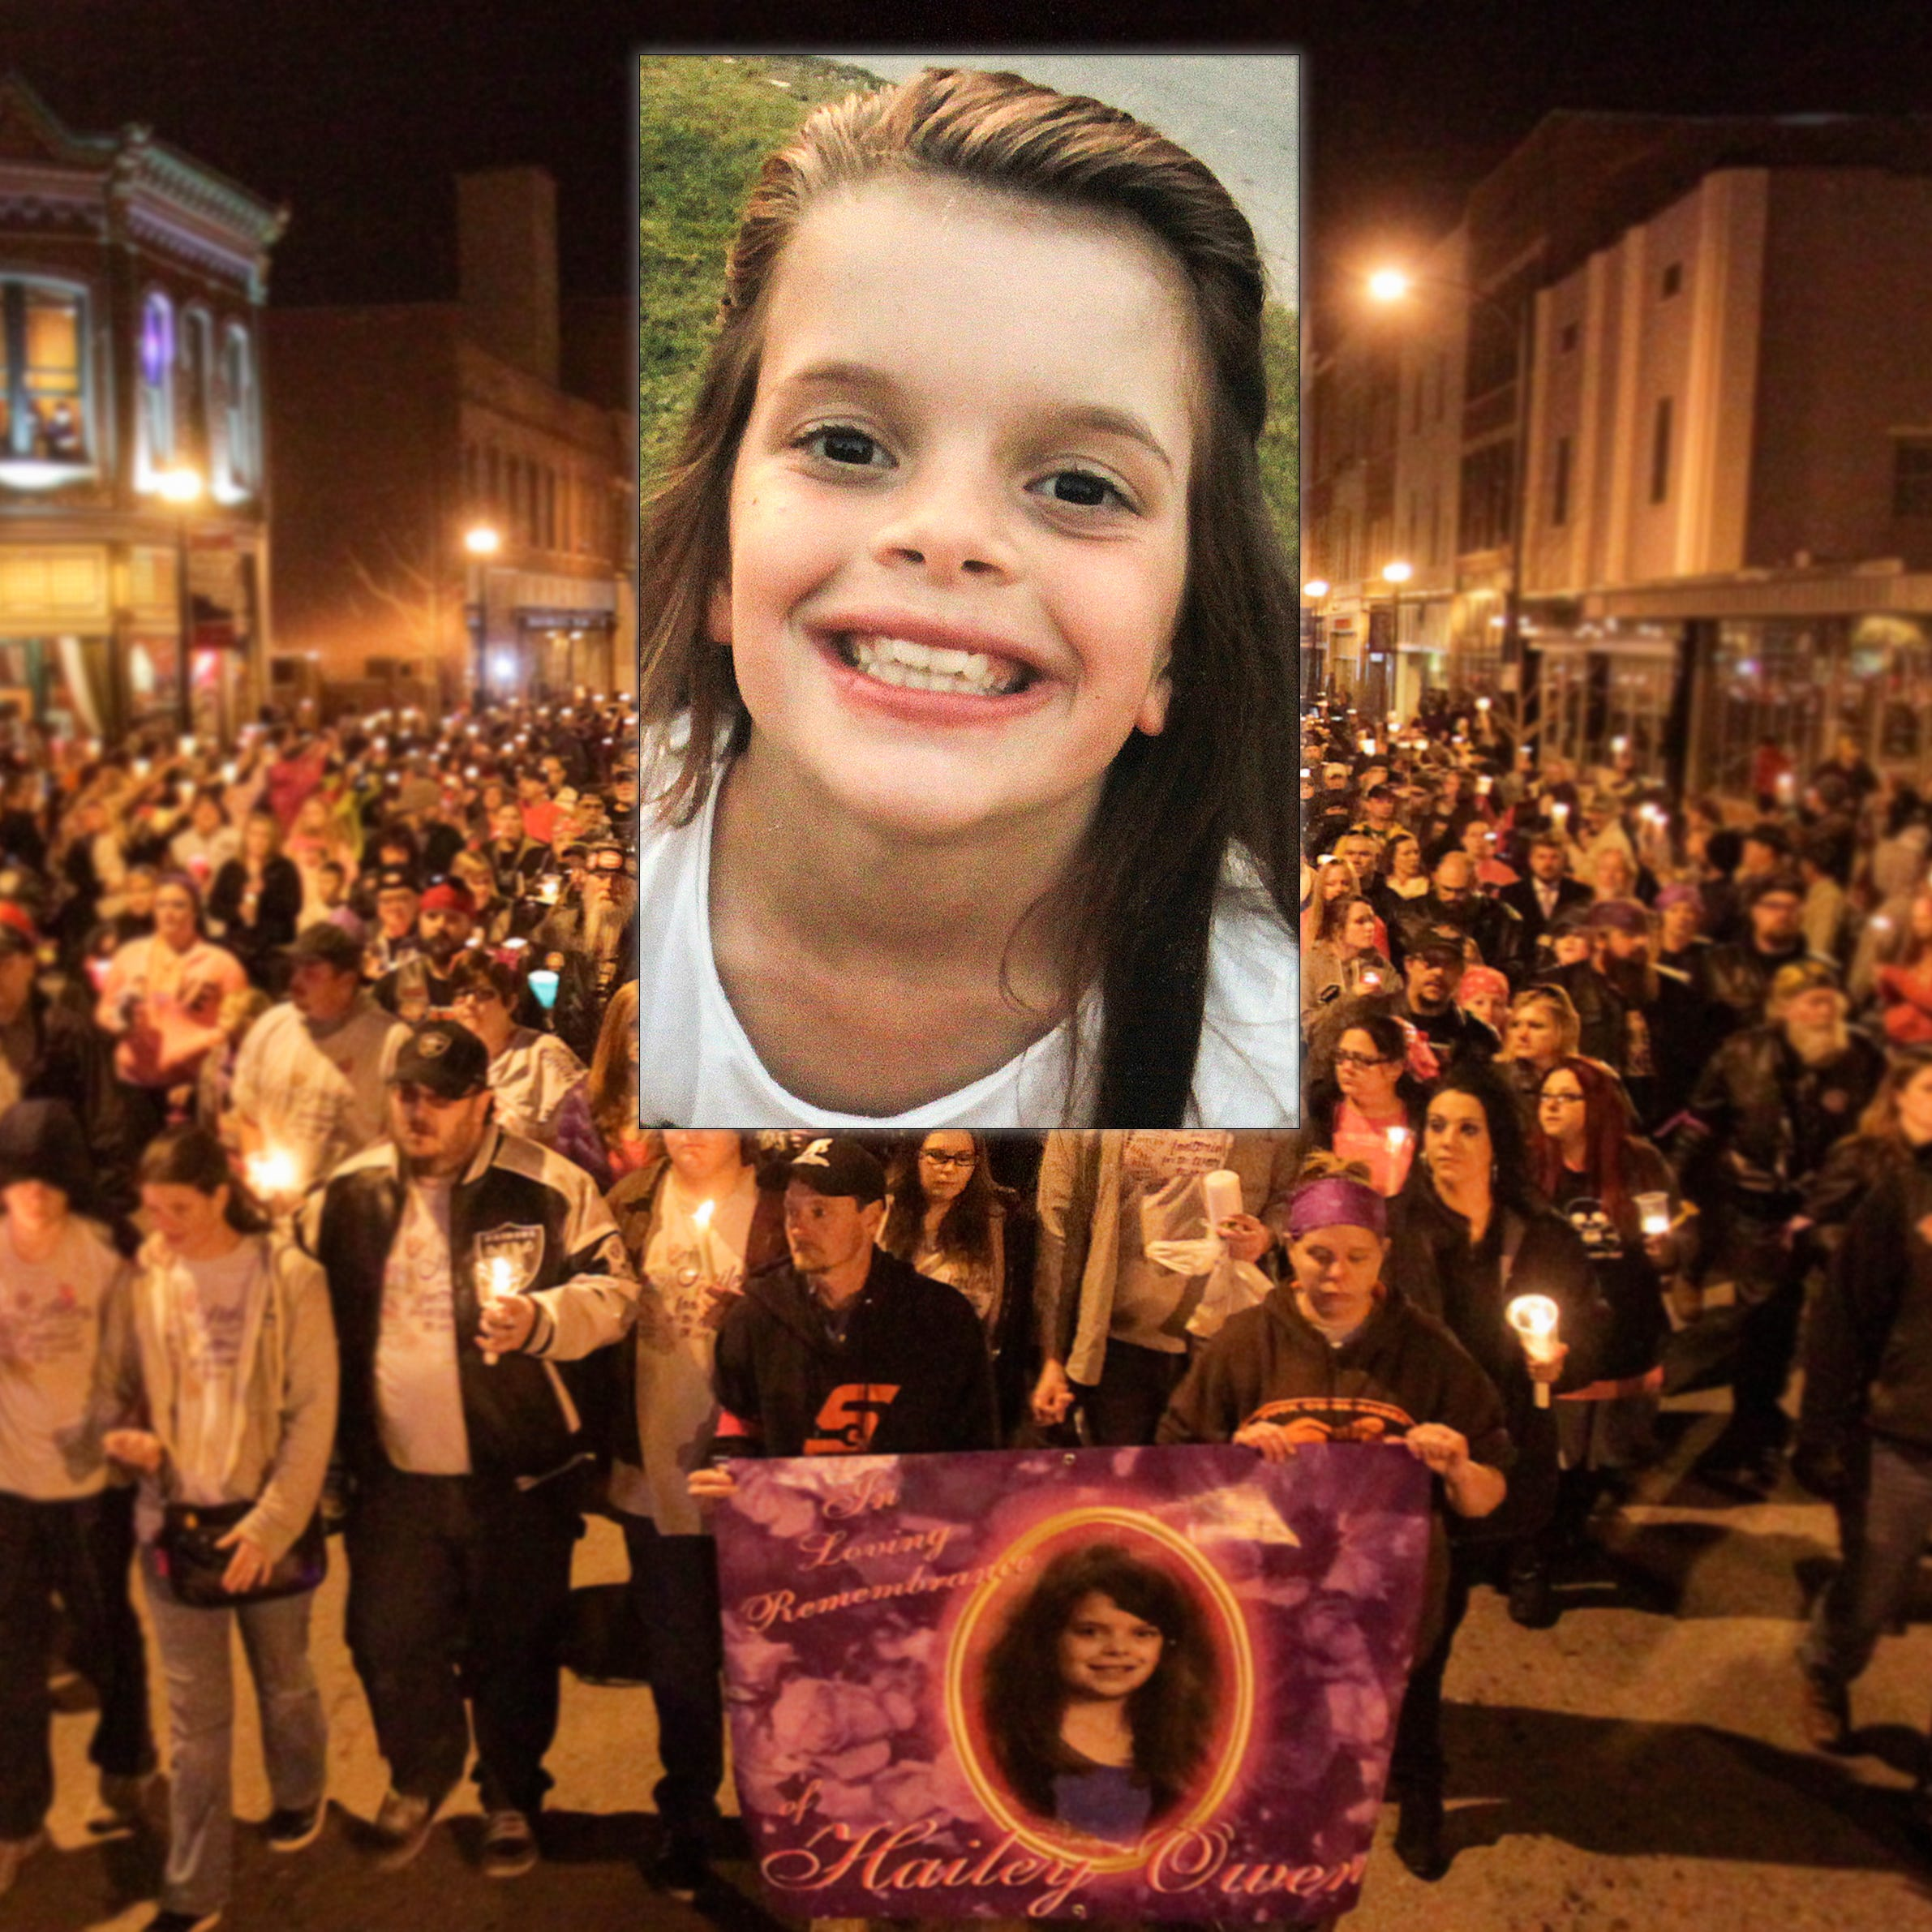 Remembering Hailey Owens: The aftermath of a Springfield tragedy, five years later